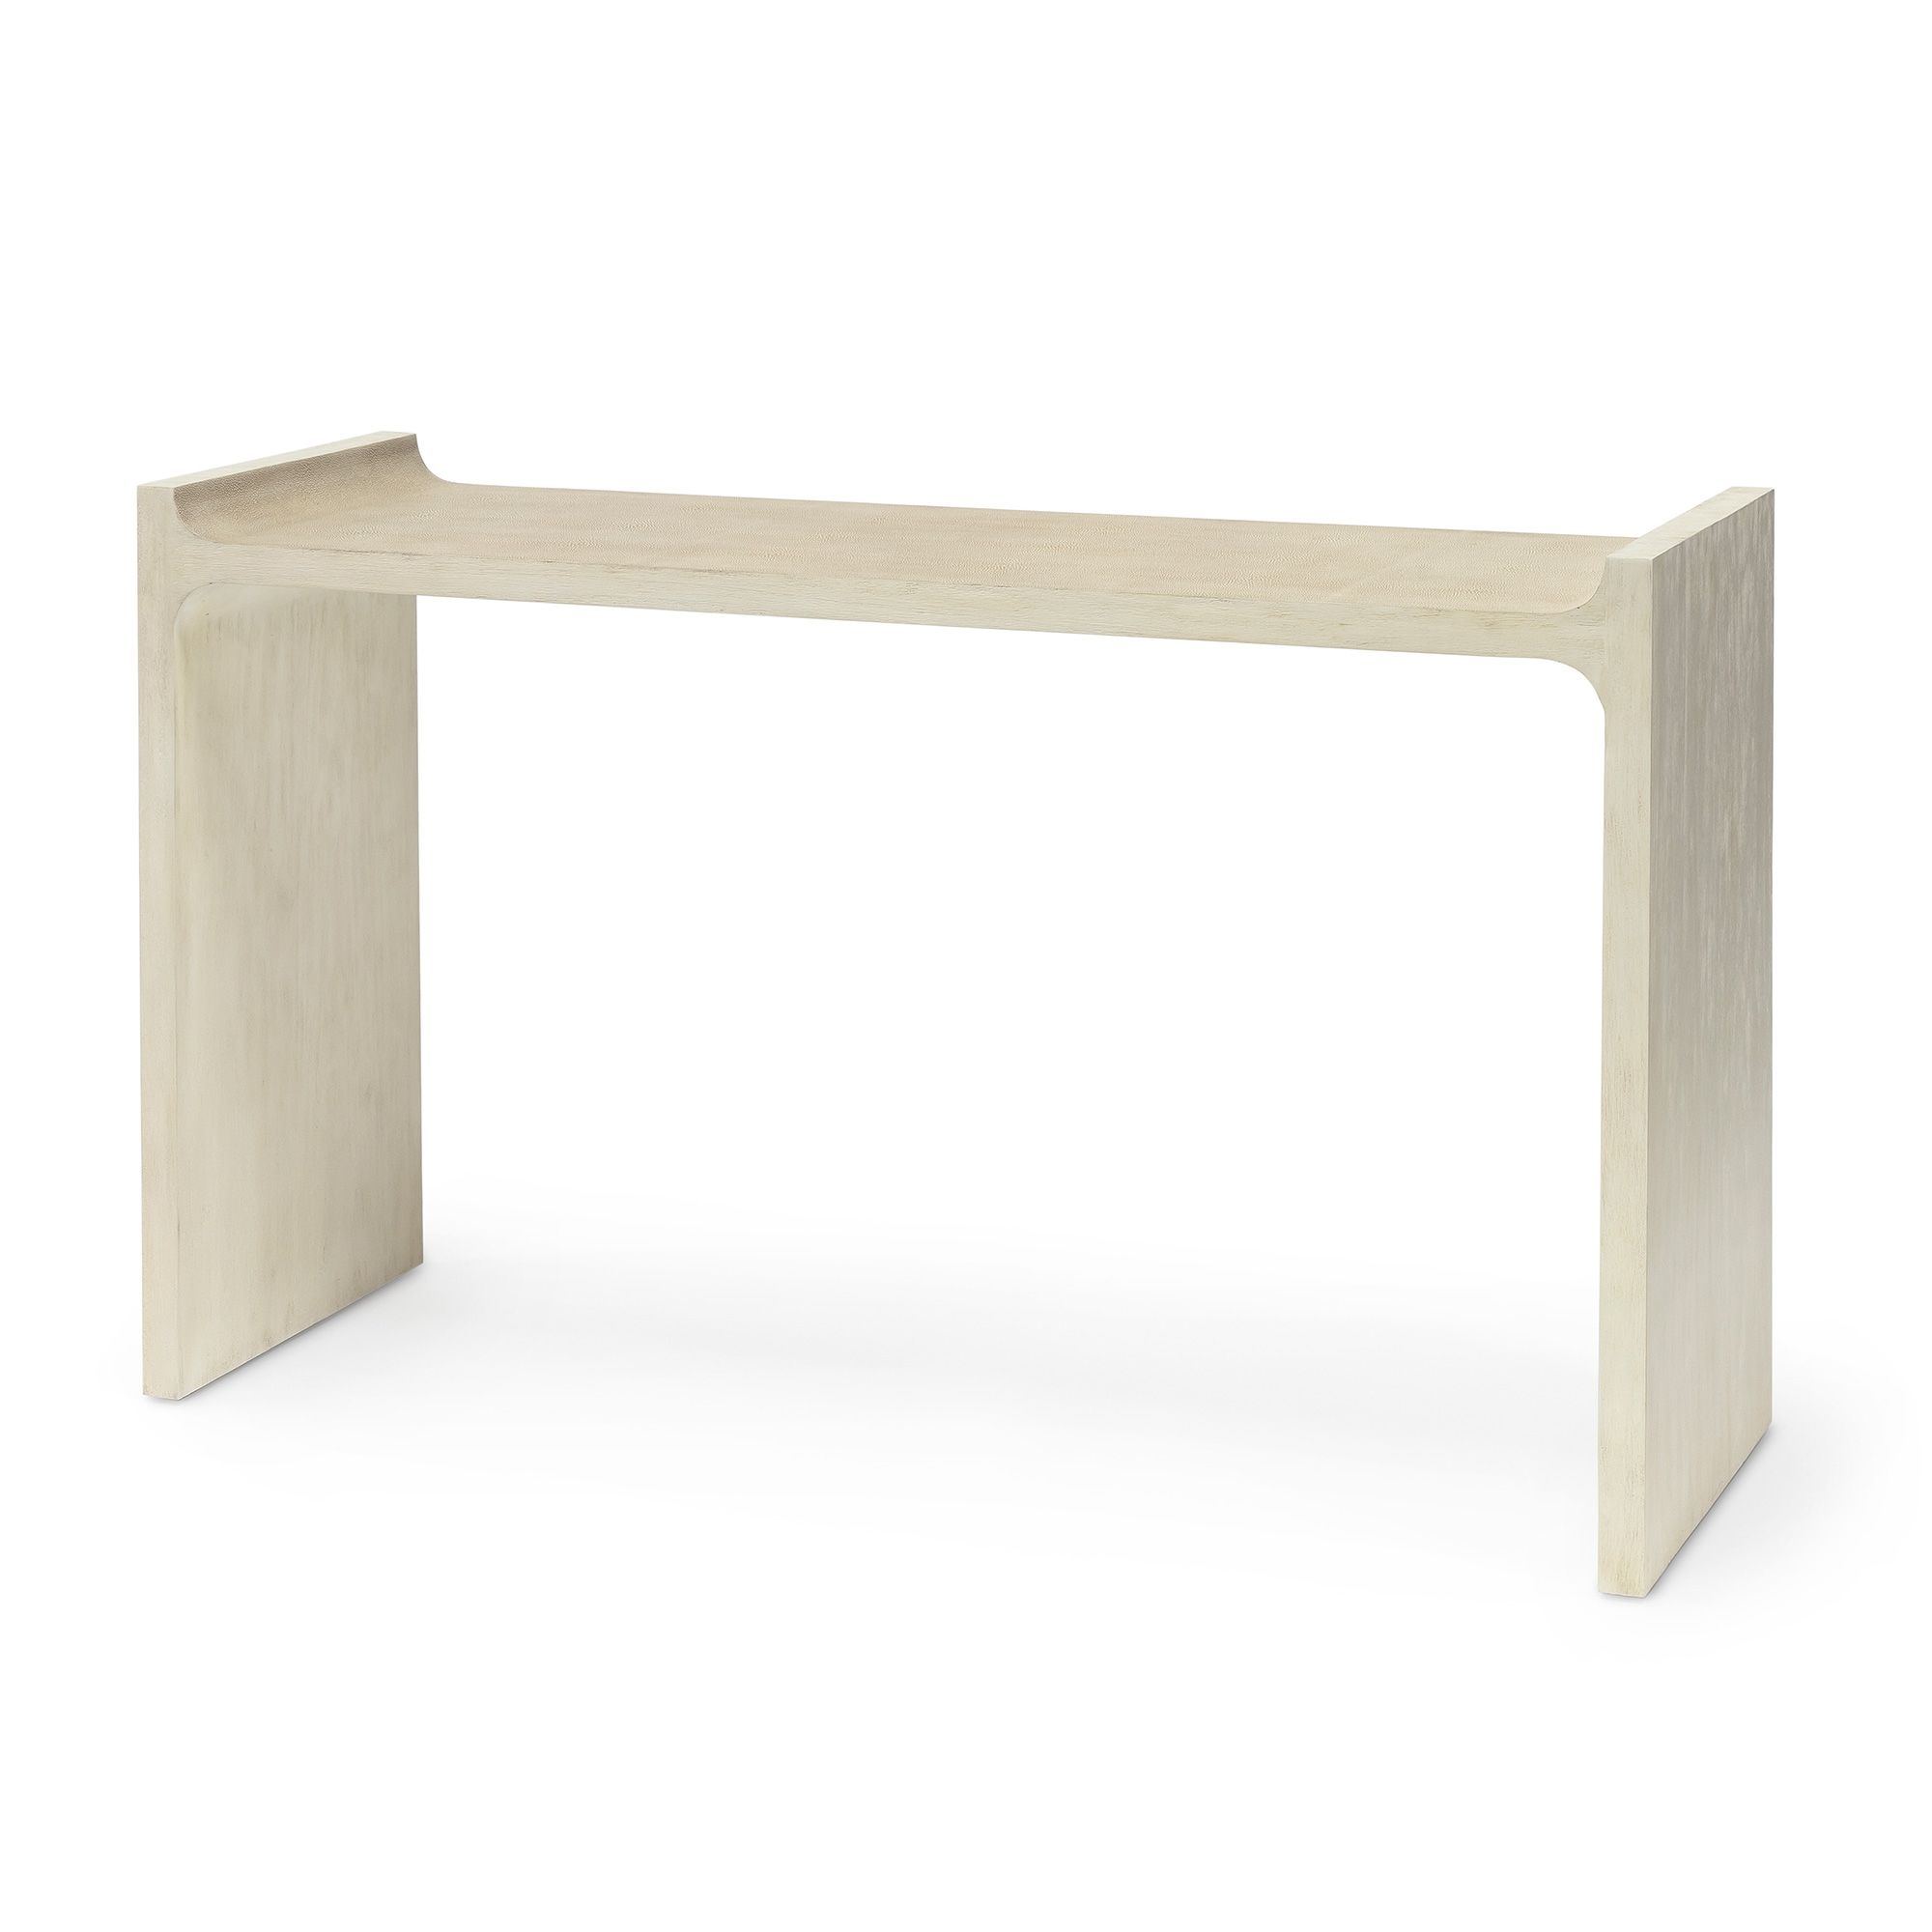 Crew Console Table Console Table Hardwood Frame White Wash Finish